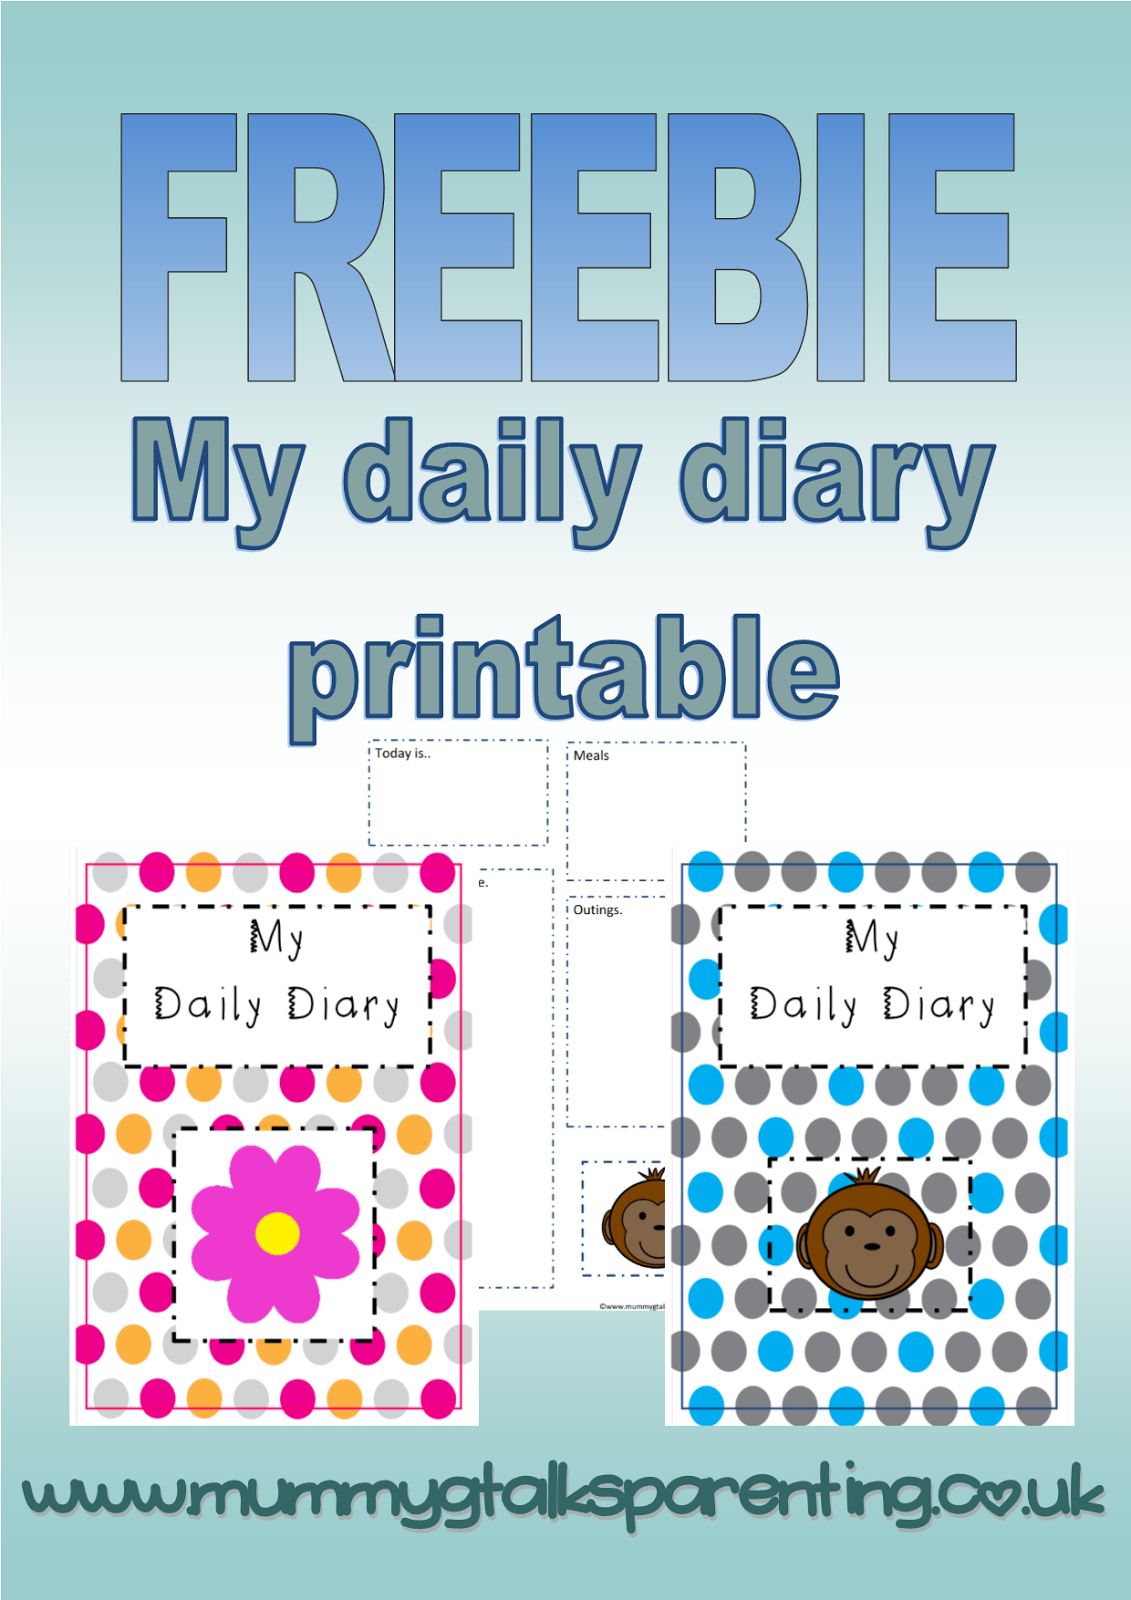 Freebie 'my Daily Diary' Printable For Childminders And Nurseries - Free Printable Childminding Resources